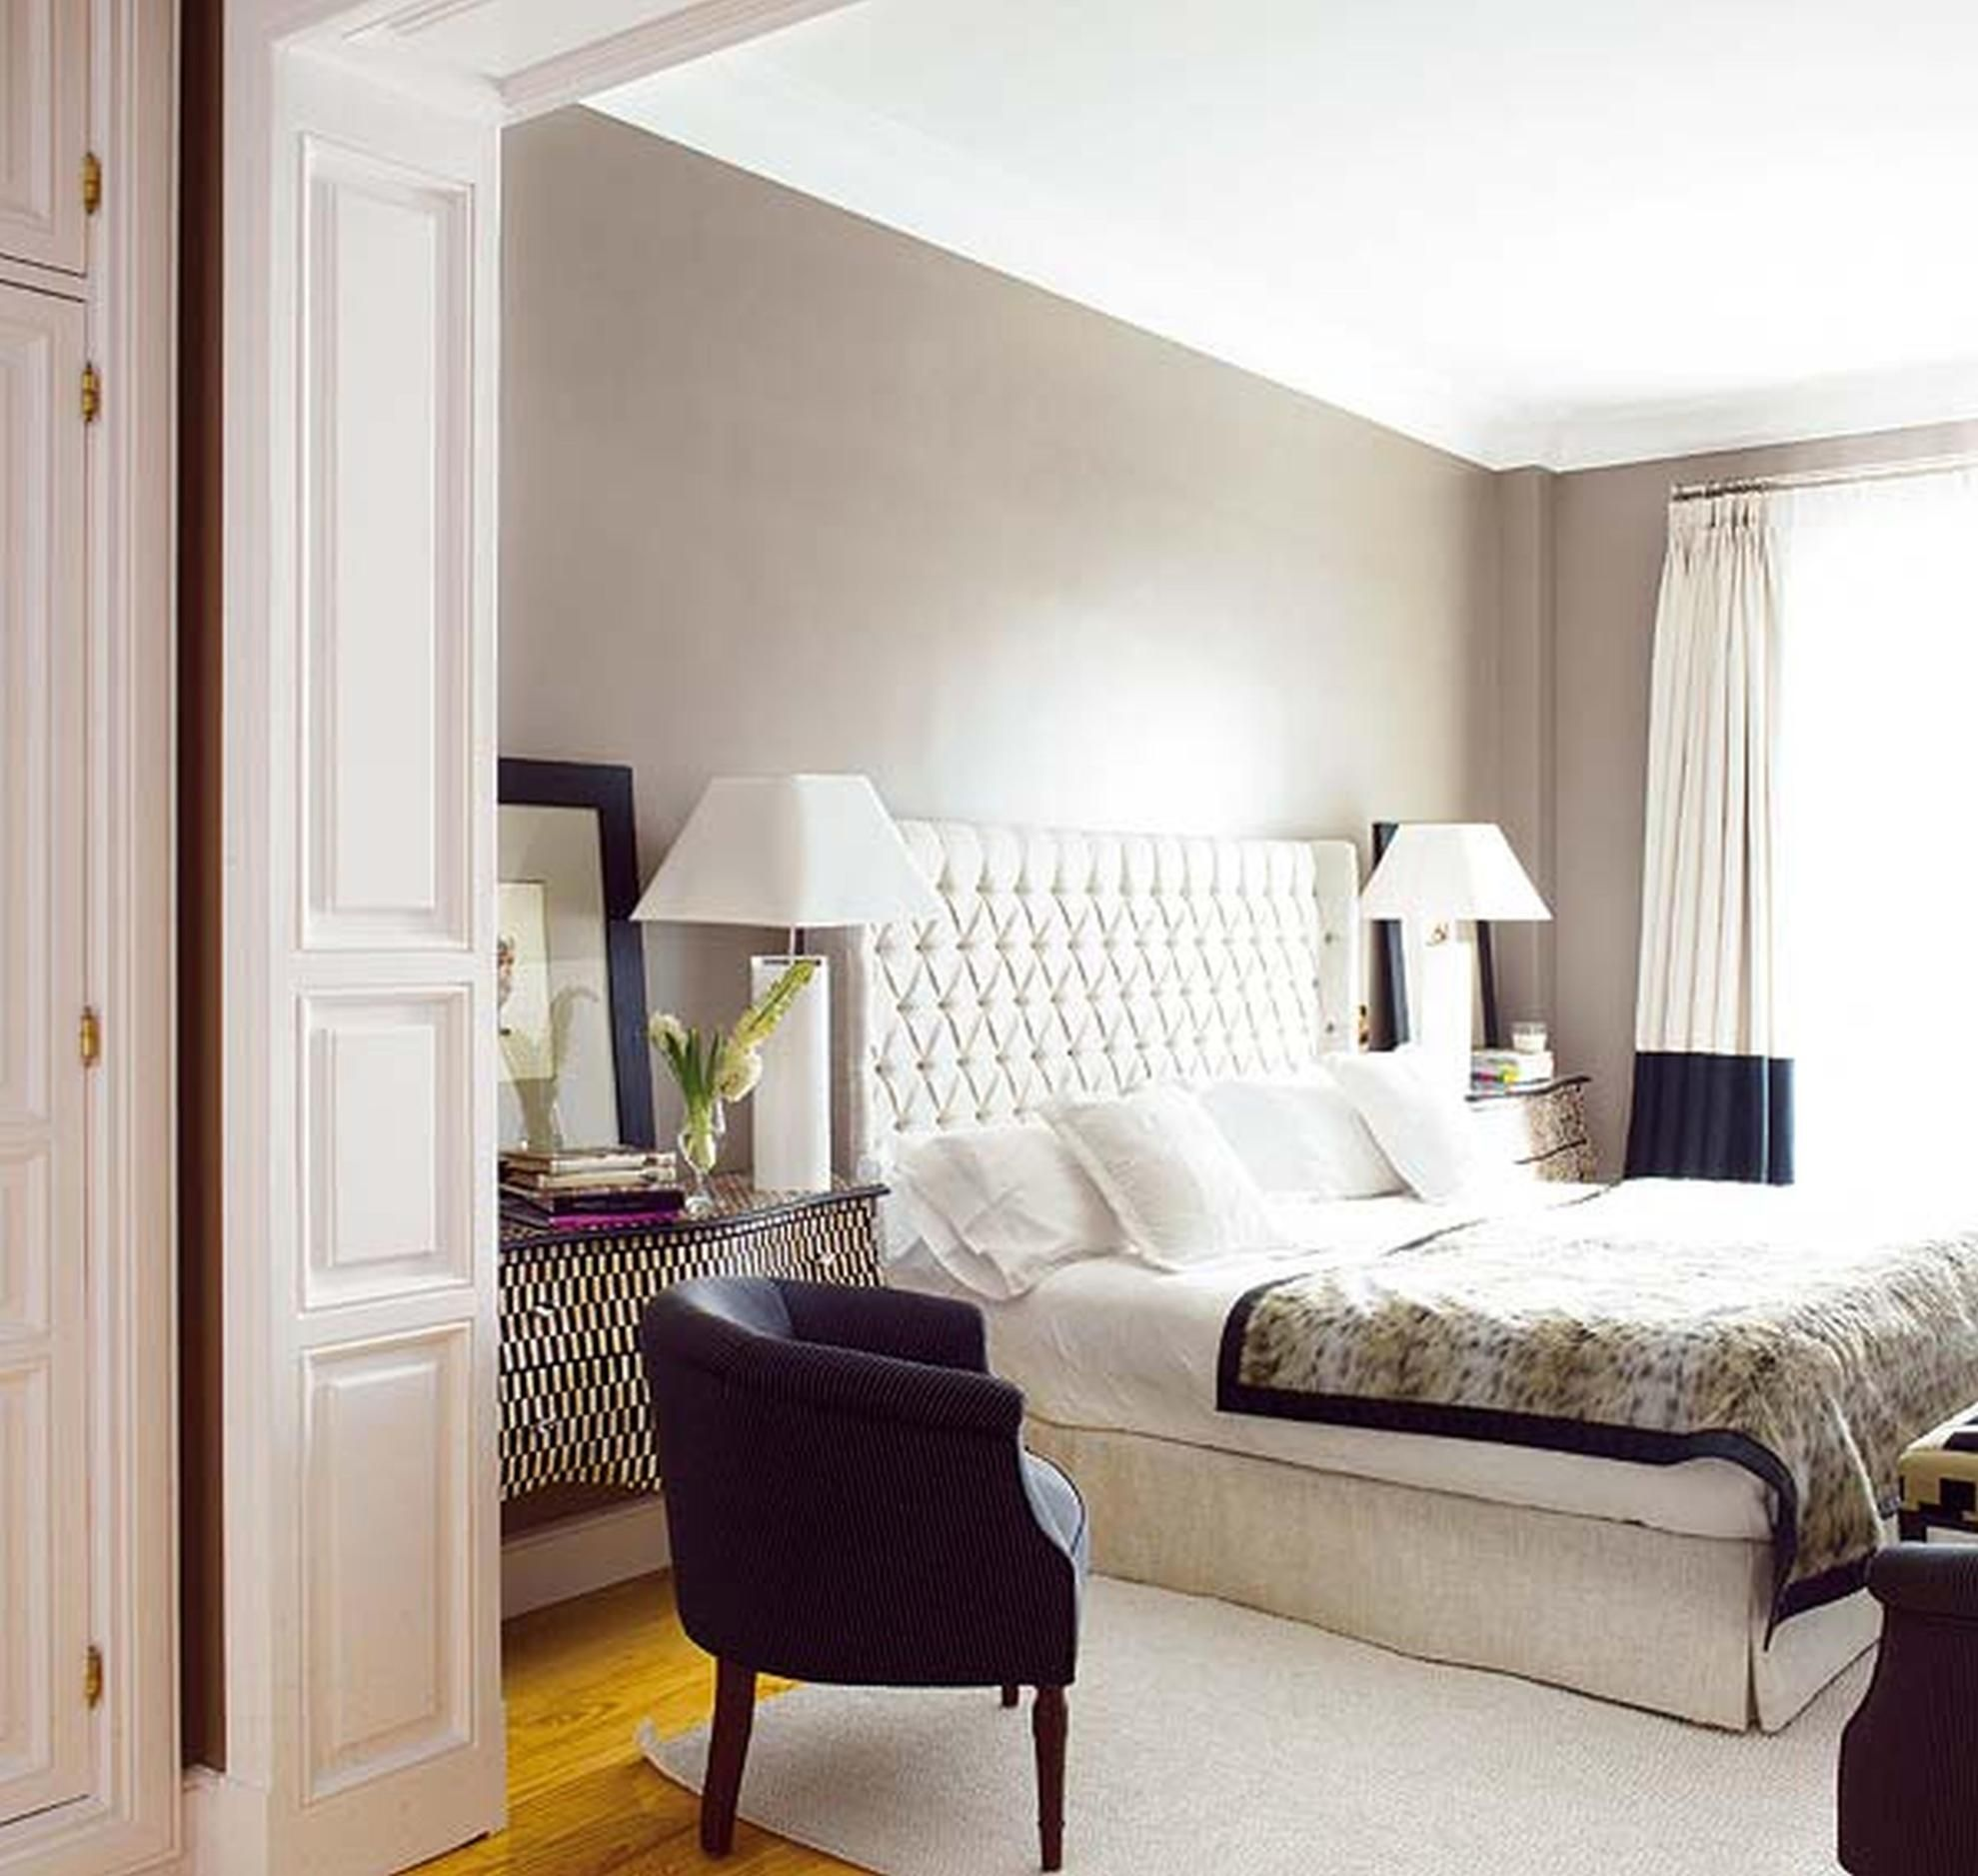 Phenomenal 40 Perfect Modern Neutral Bedroom Paint Colors Ideas Download Free Architecture Designs Scobabritishbridgeorg